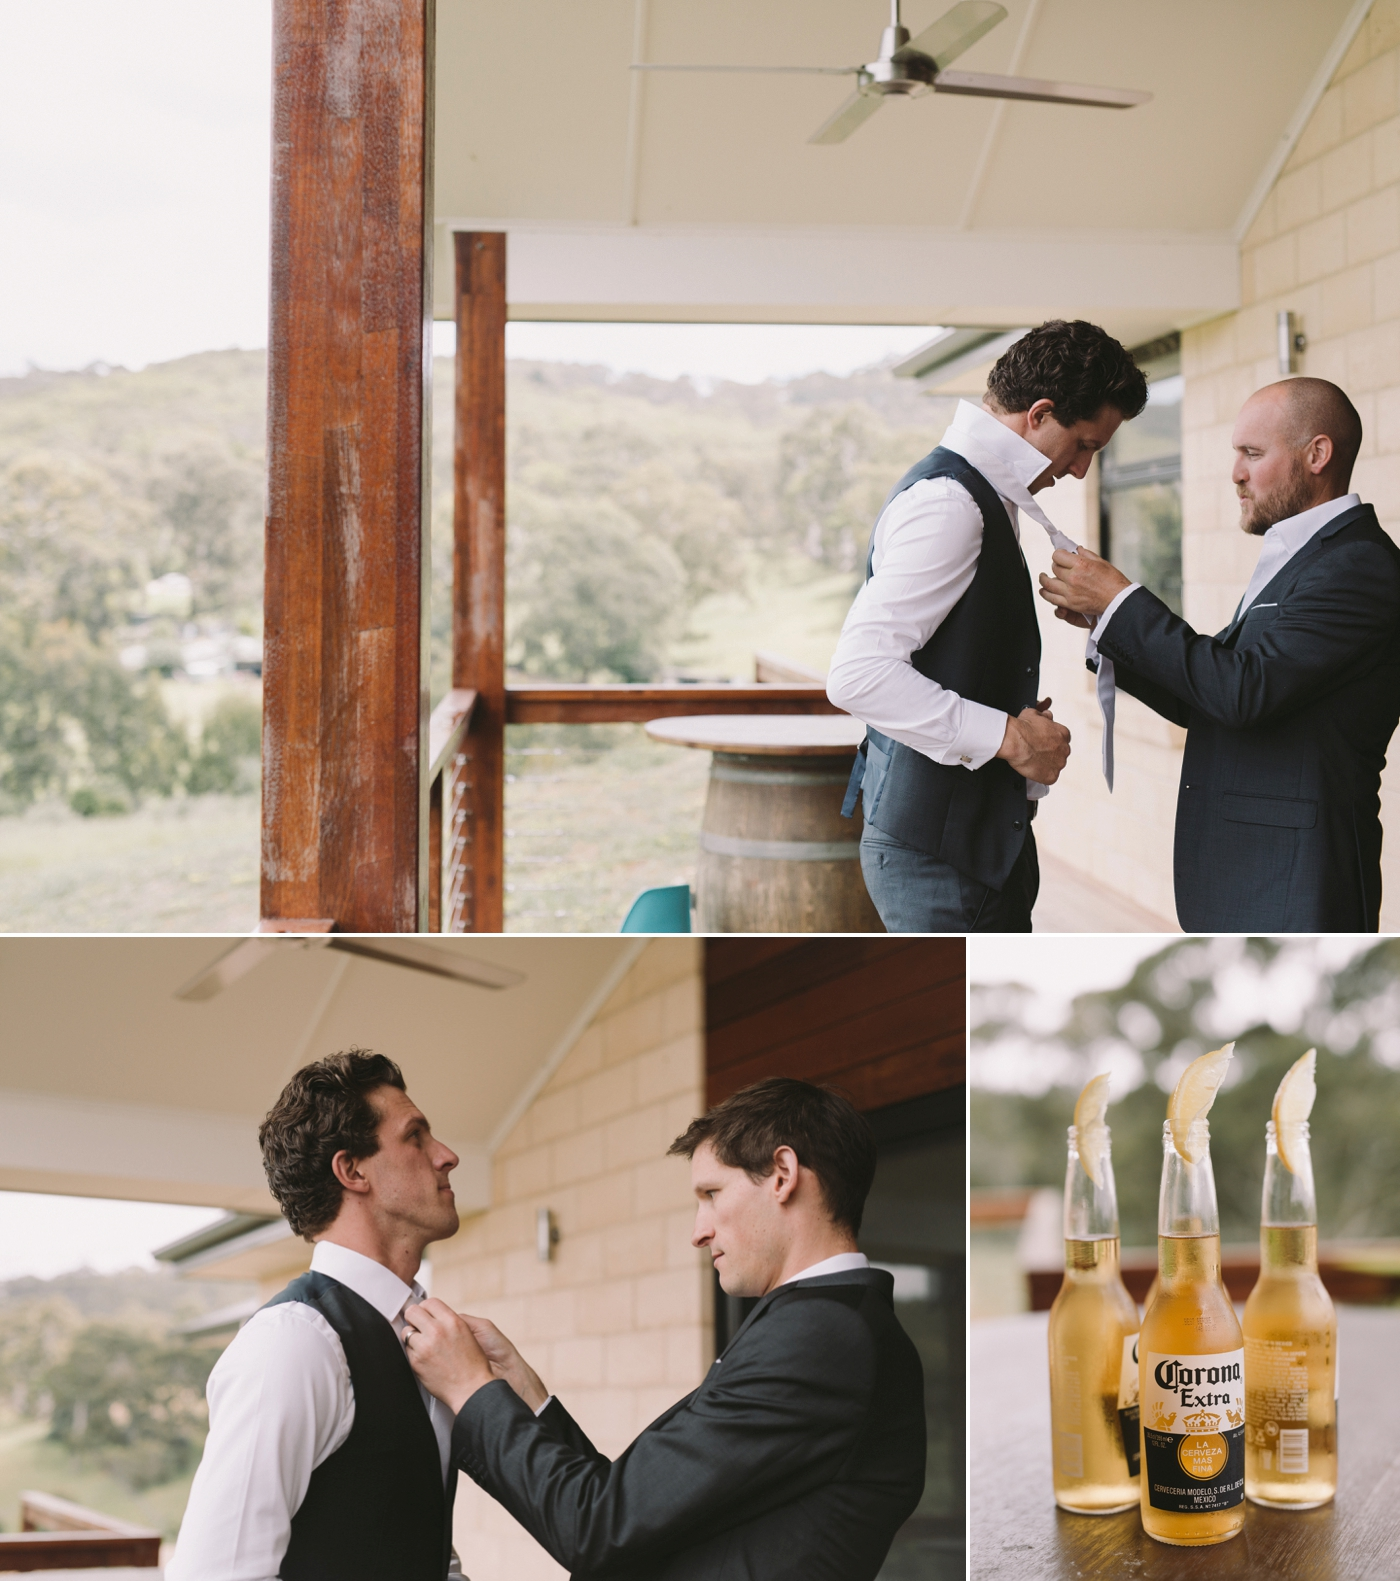 Penny and Michael - Adelaide Hills Wedding Photographer - Natural wedding photography in Adelaide - Katherine Schultz 8